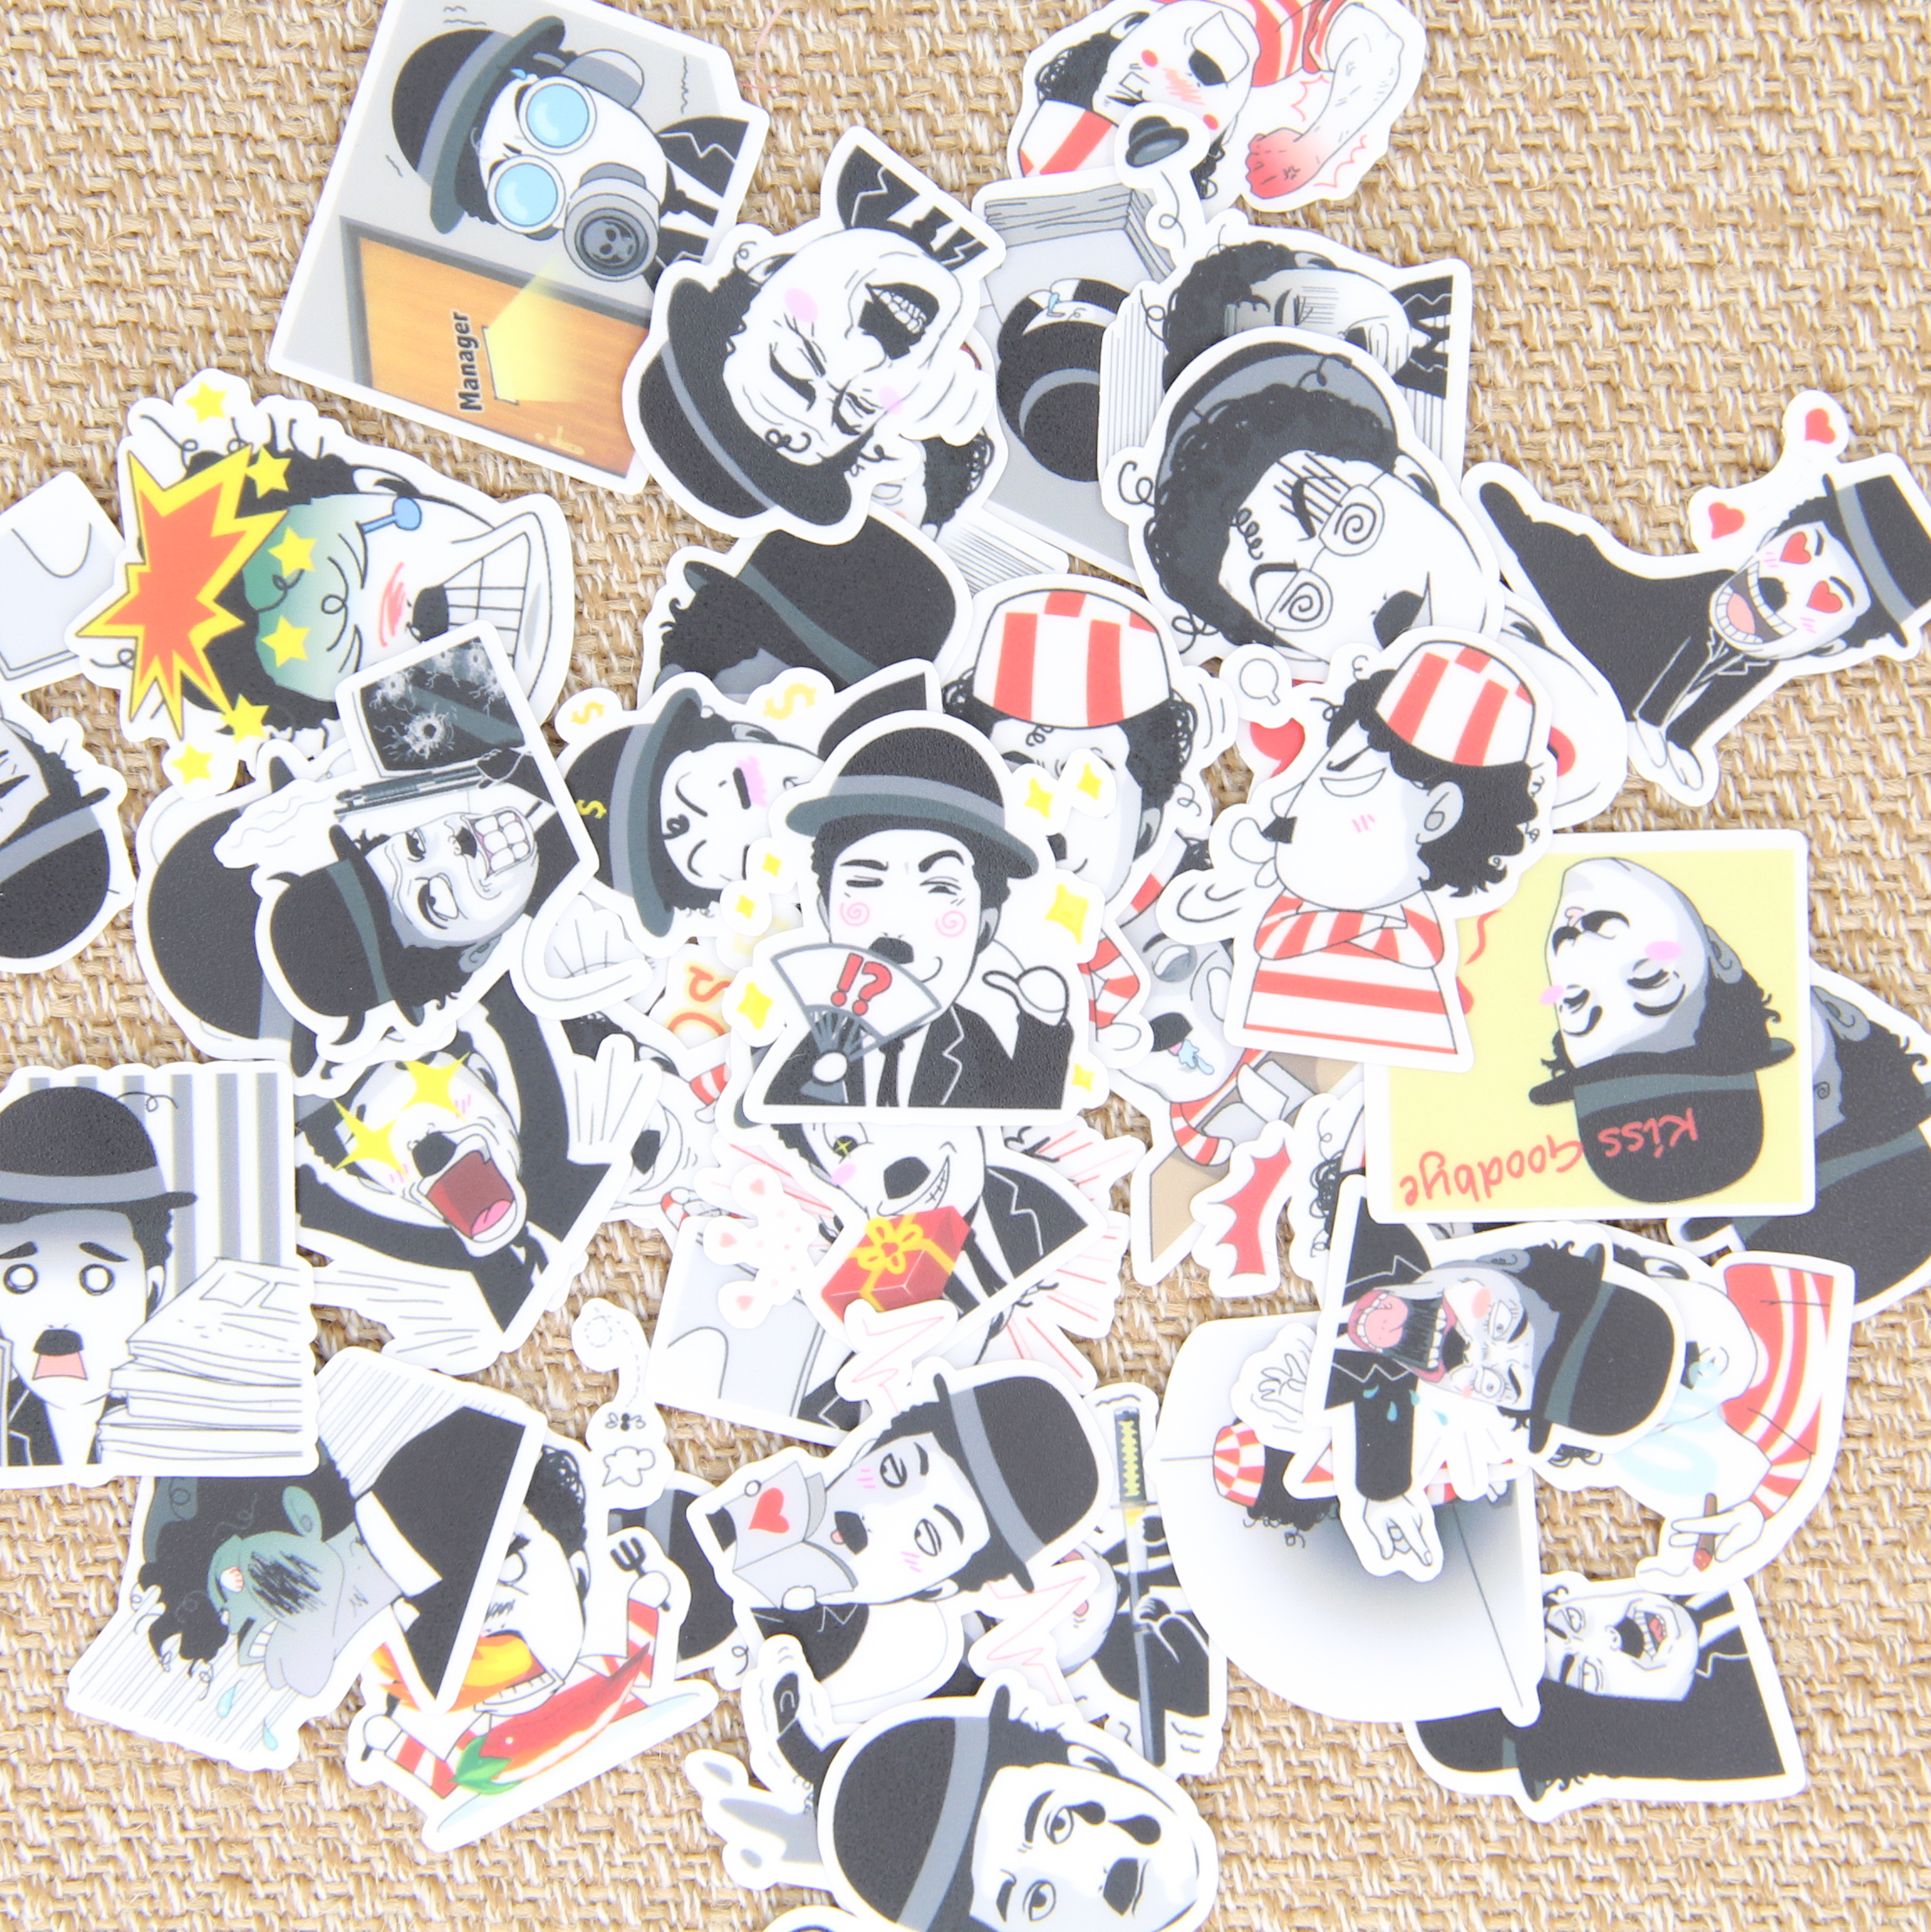 40pcs Self-made Cool Man Crazy Men Scrapbooking Stickers Decorative Sticker DIY Craft Photo Albums Decals Diary Deco